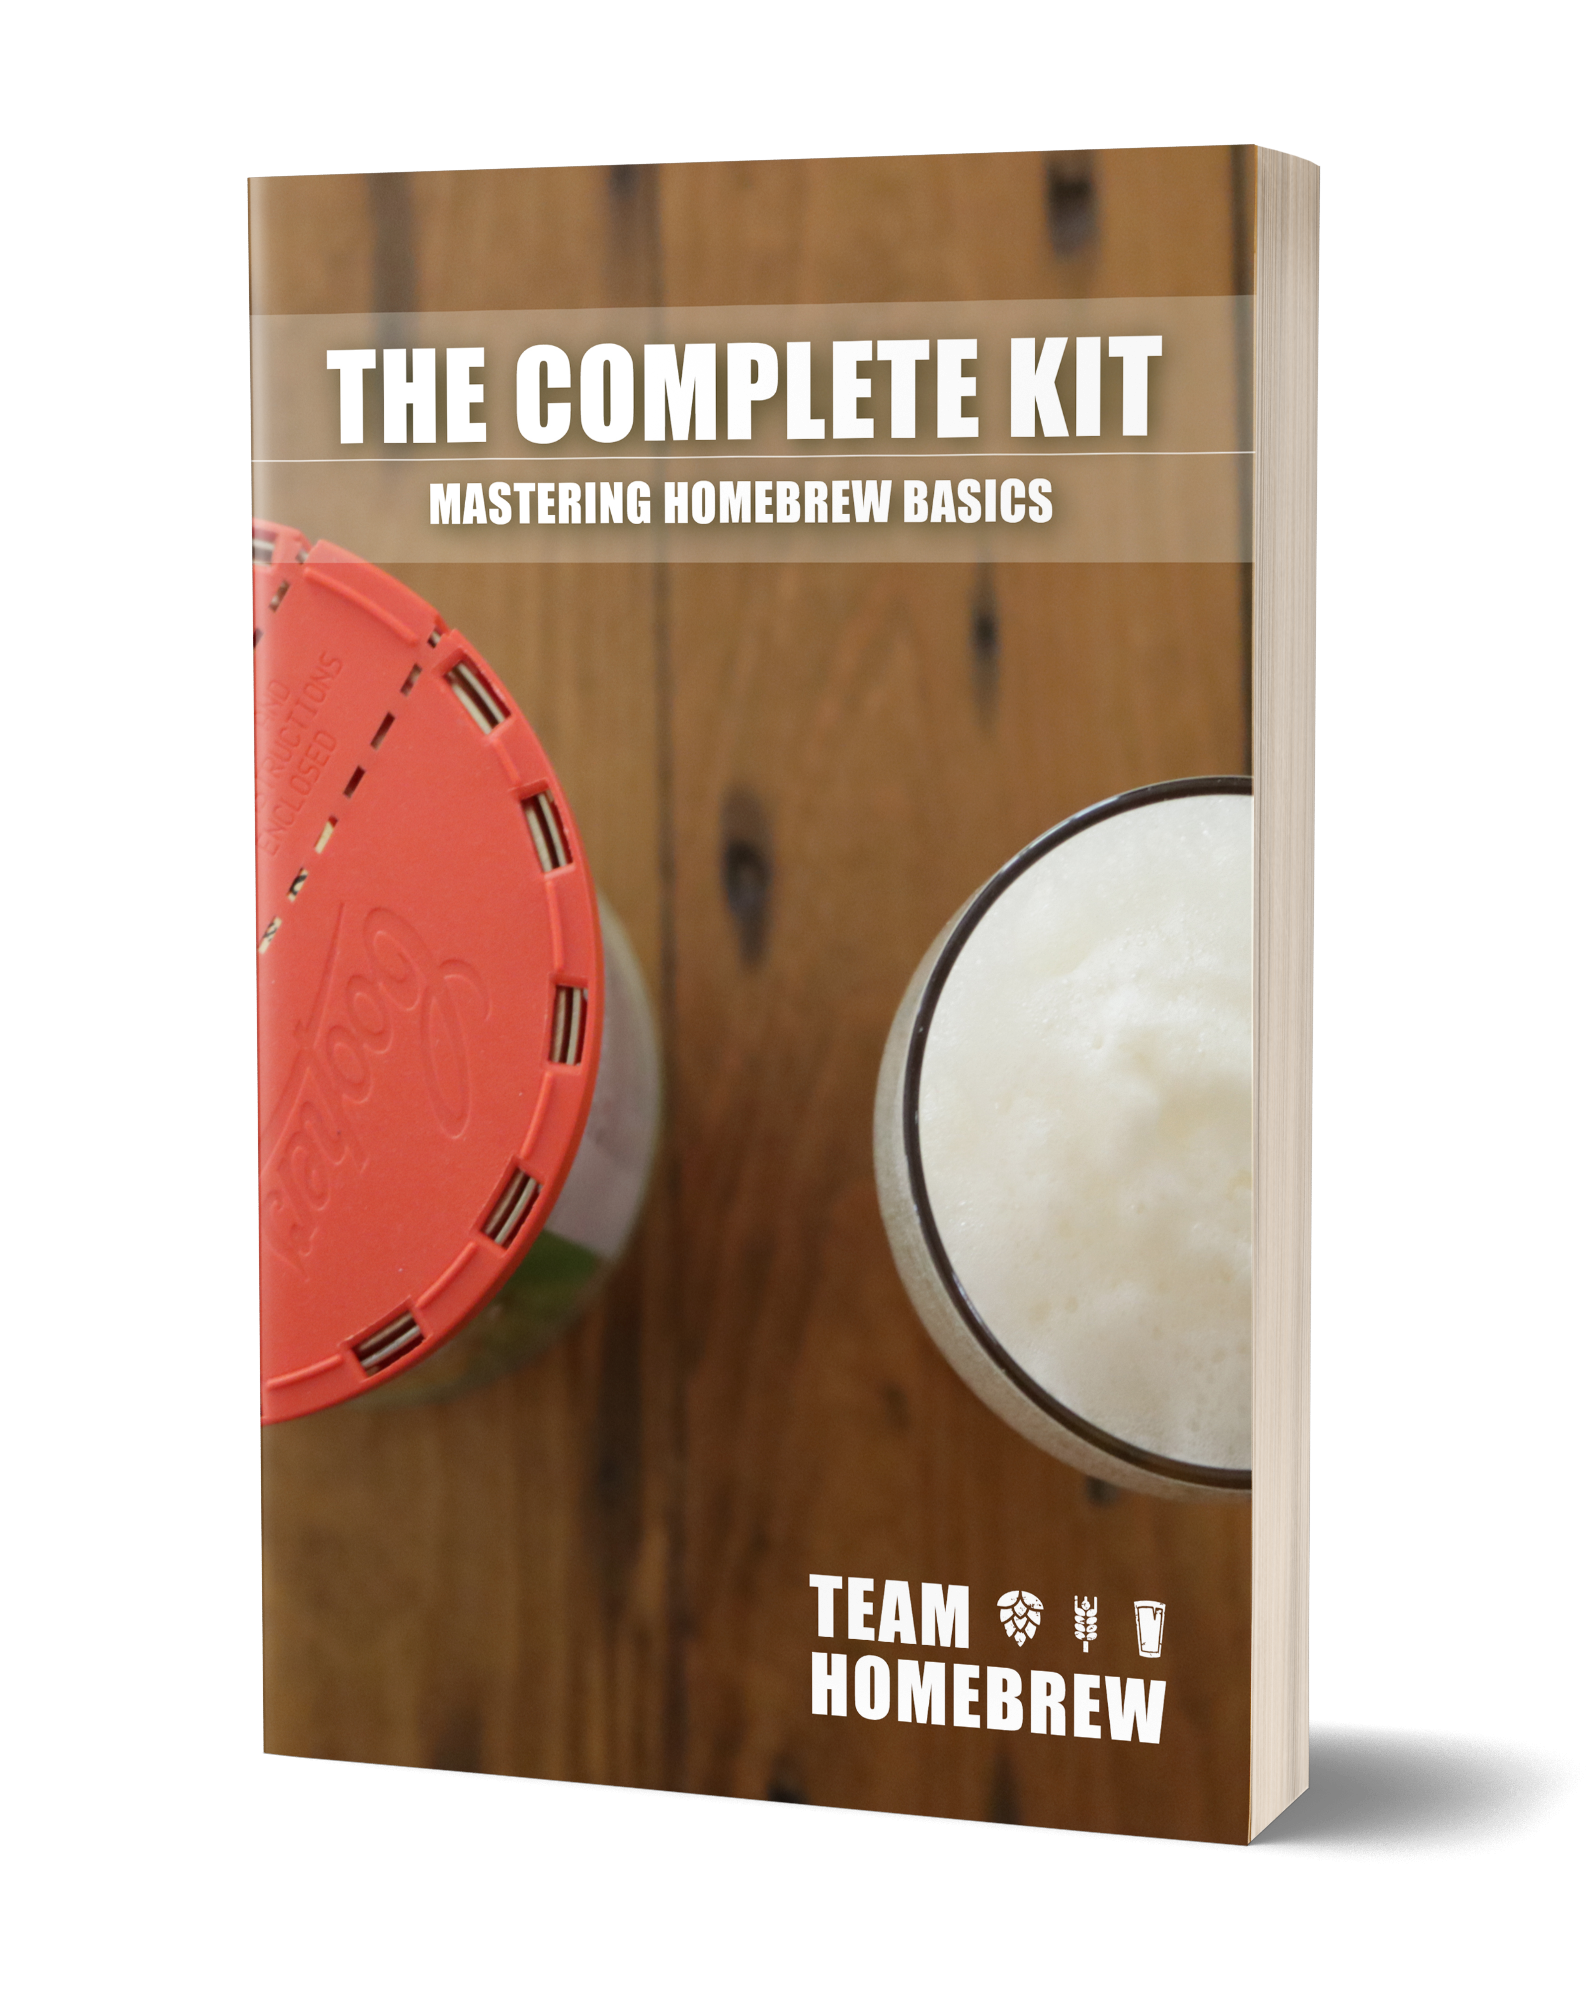 The Complete Kit - Just great advice